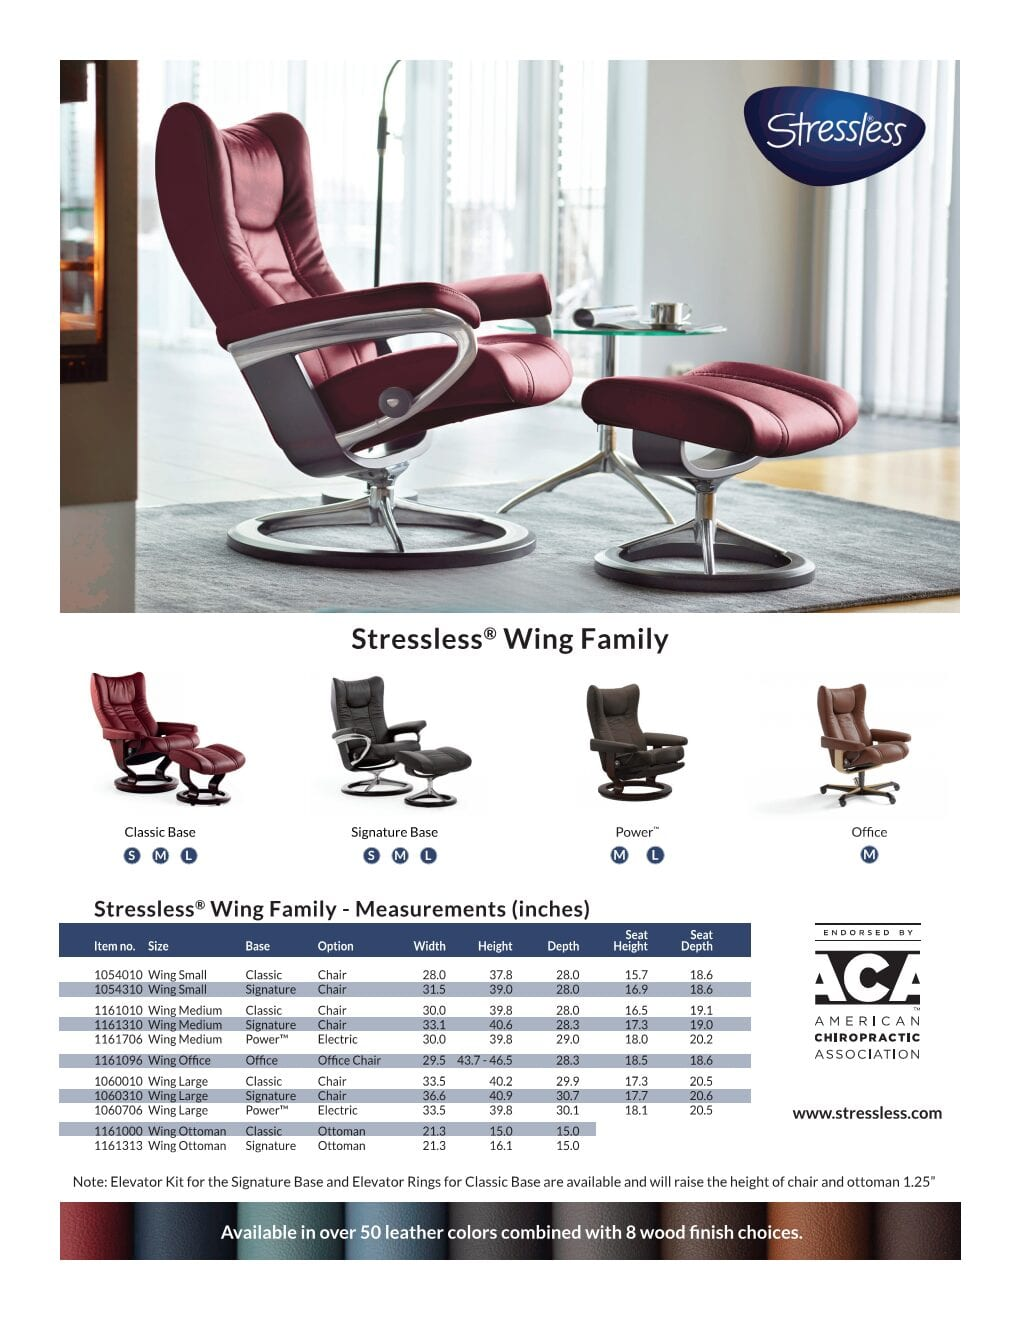 Wing Stressless Product Sheet